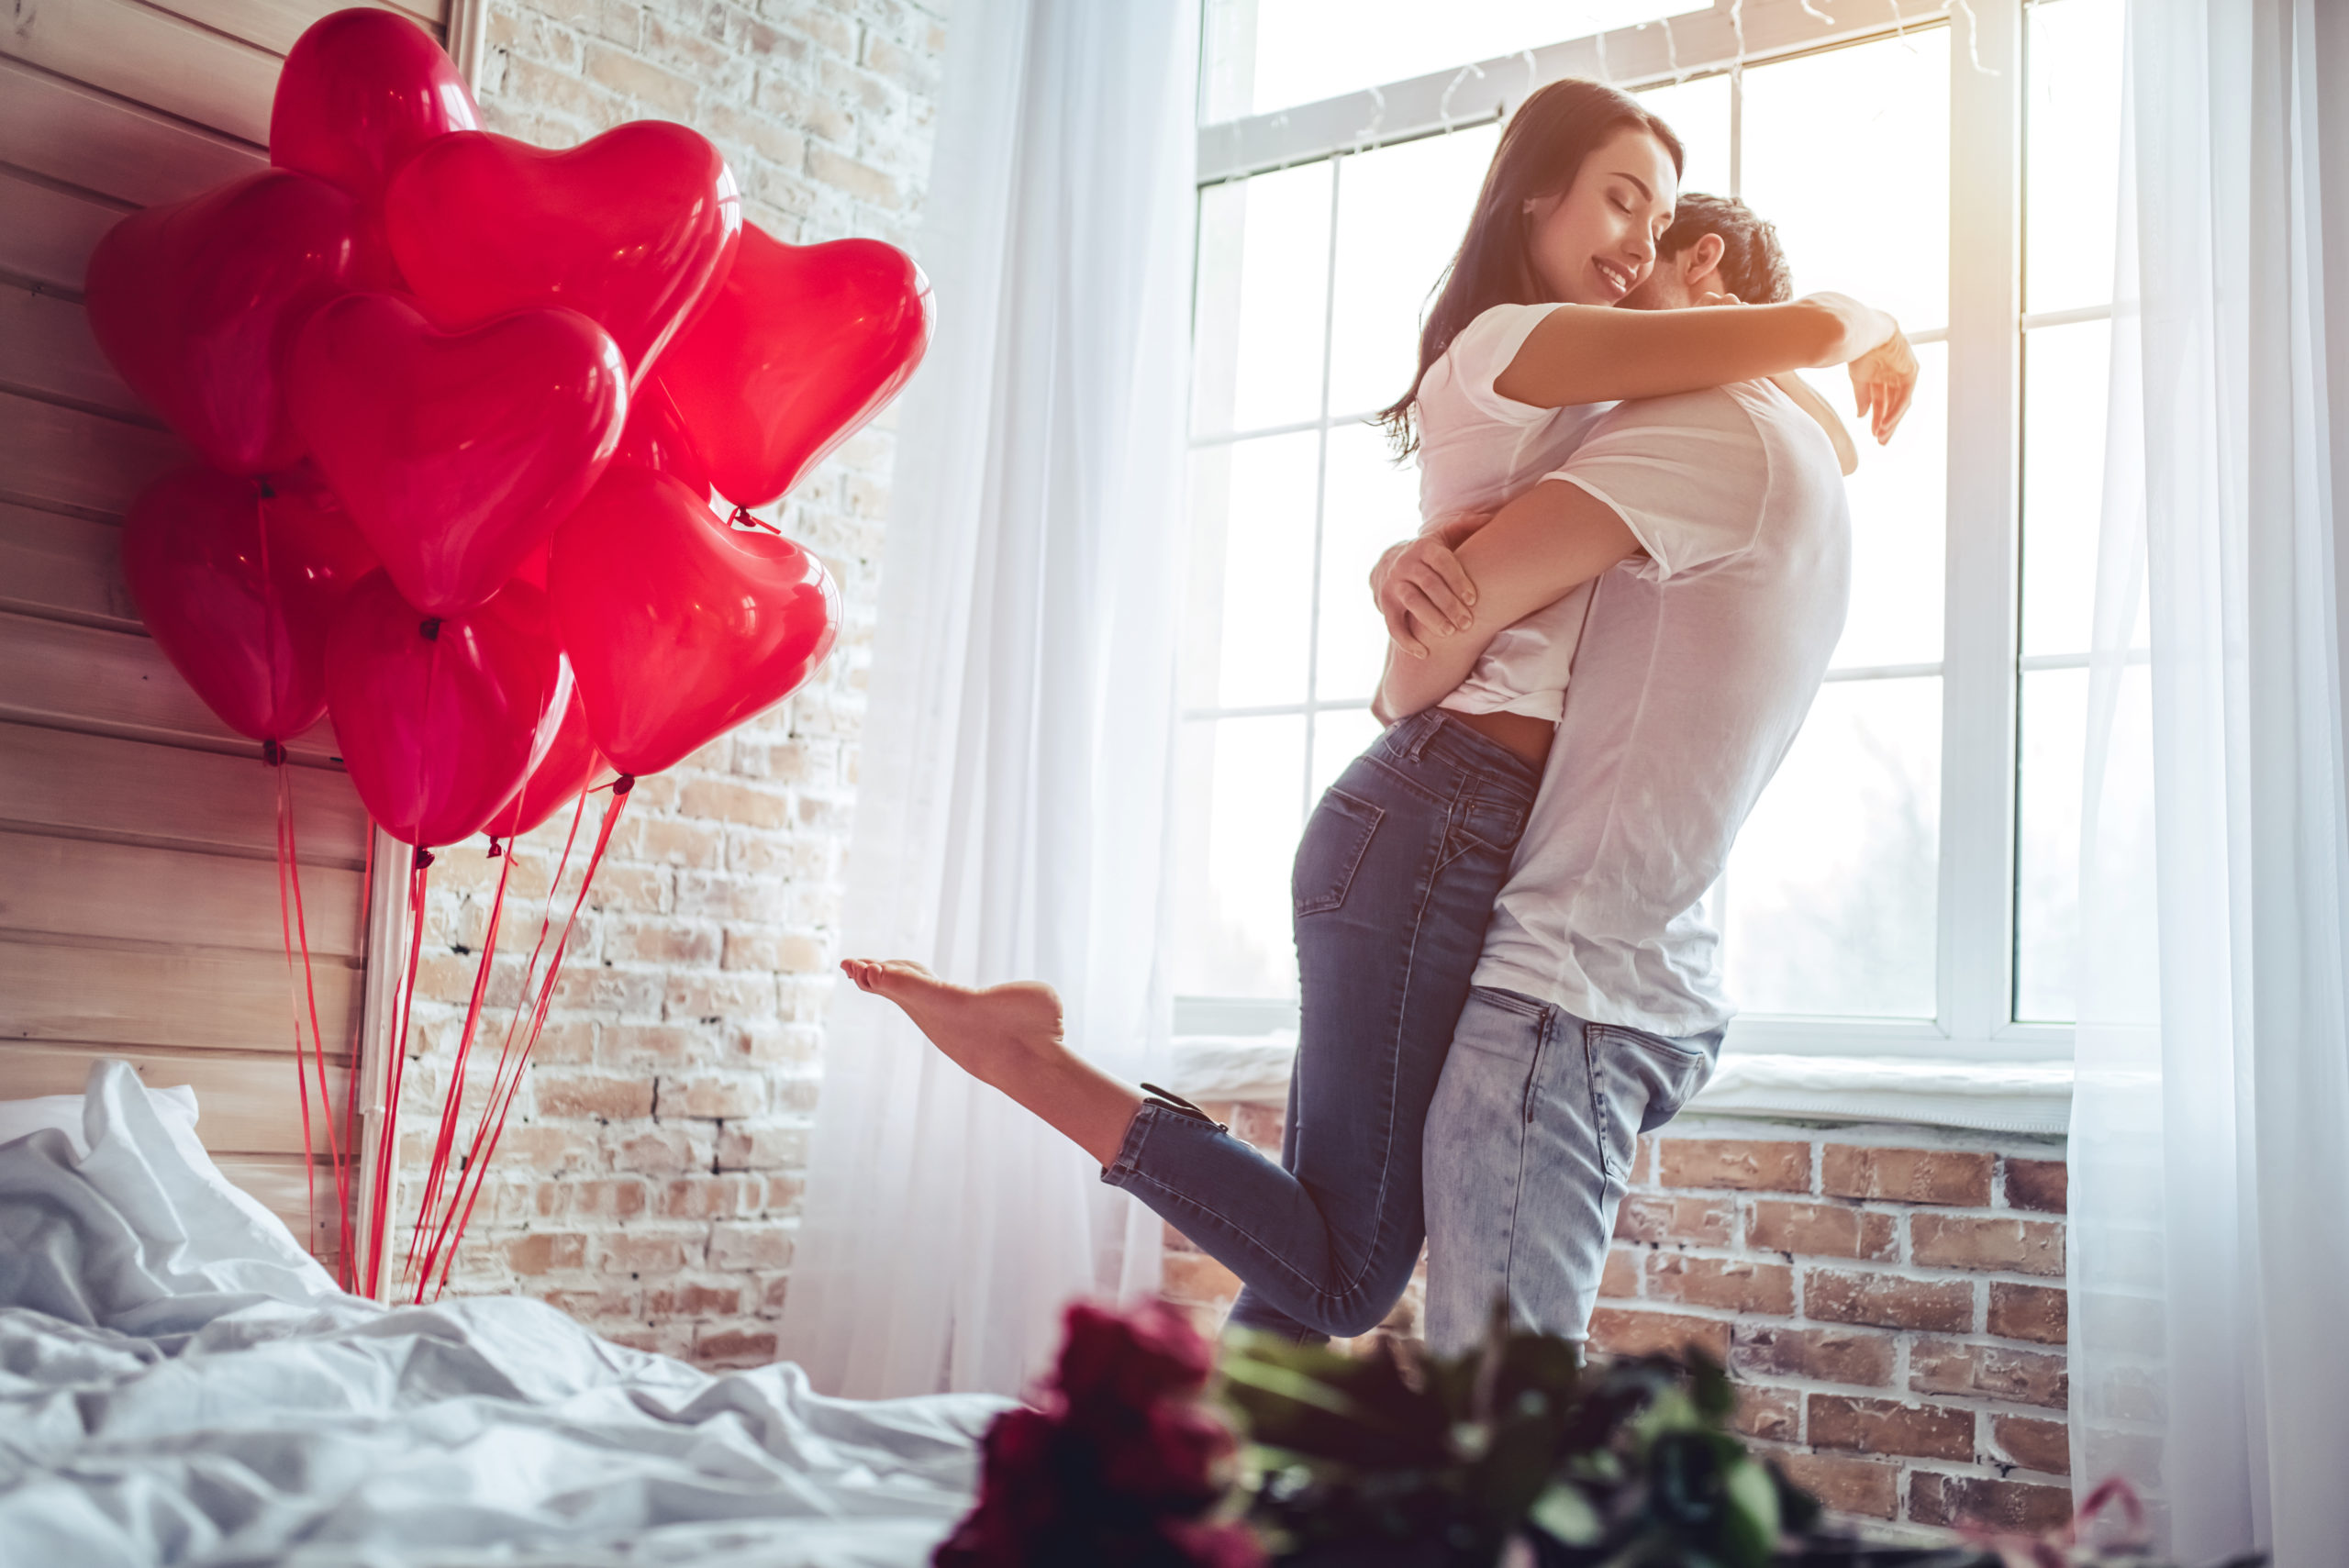 beautiful-young-couple-home-hugging-kissing-789710509